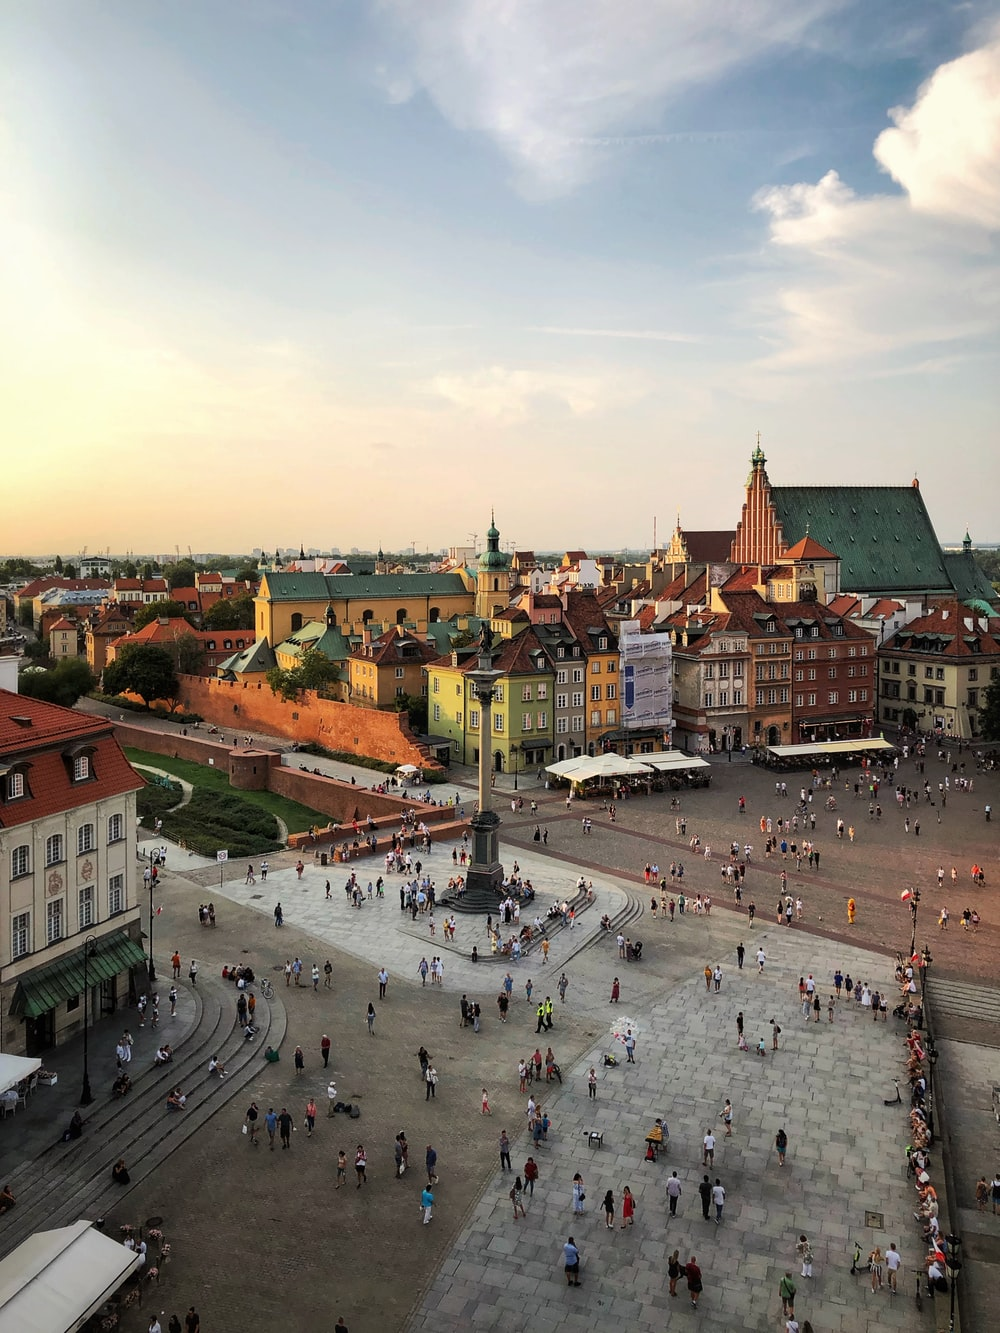 aerial photograph of people walking on town square